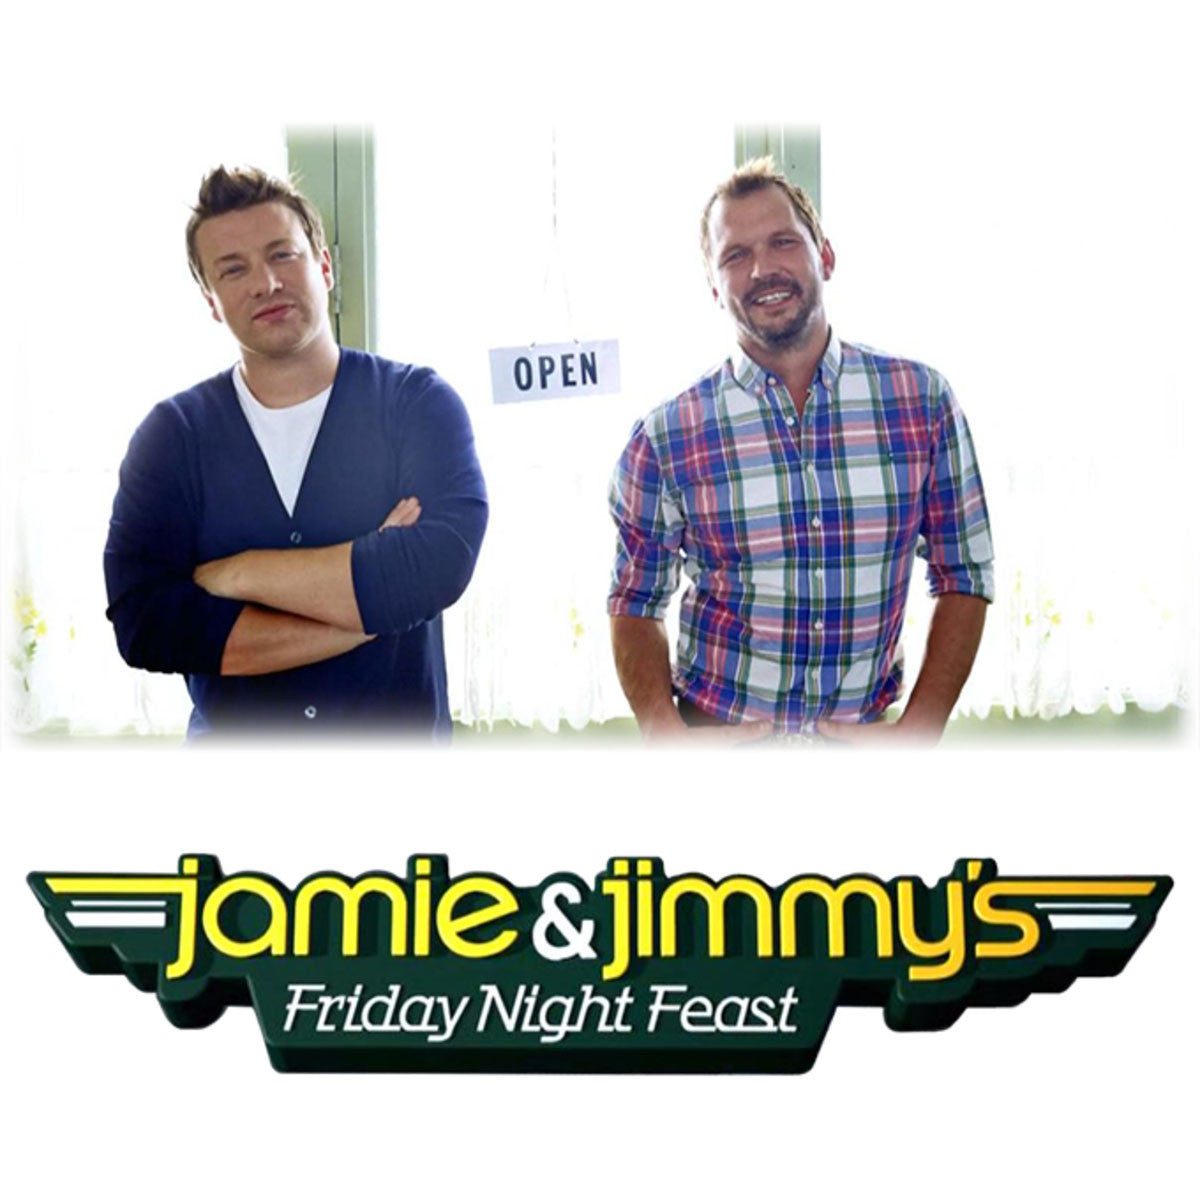 Jamie Oliver and Jimmy Doherty Friday Night Feast - Featuring The Original Maids of Honour